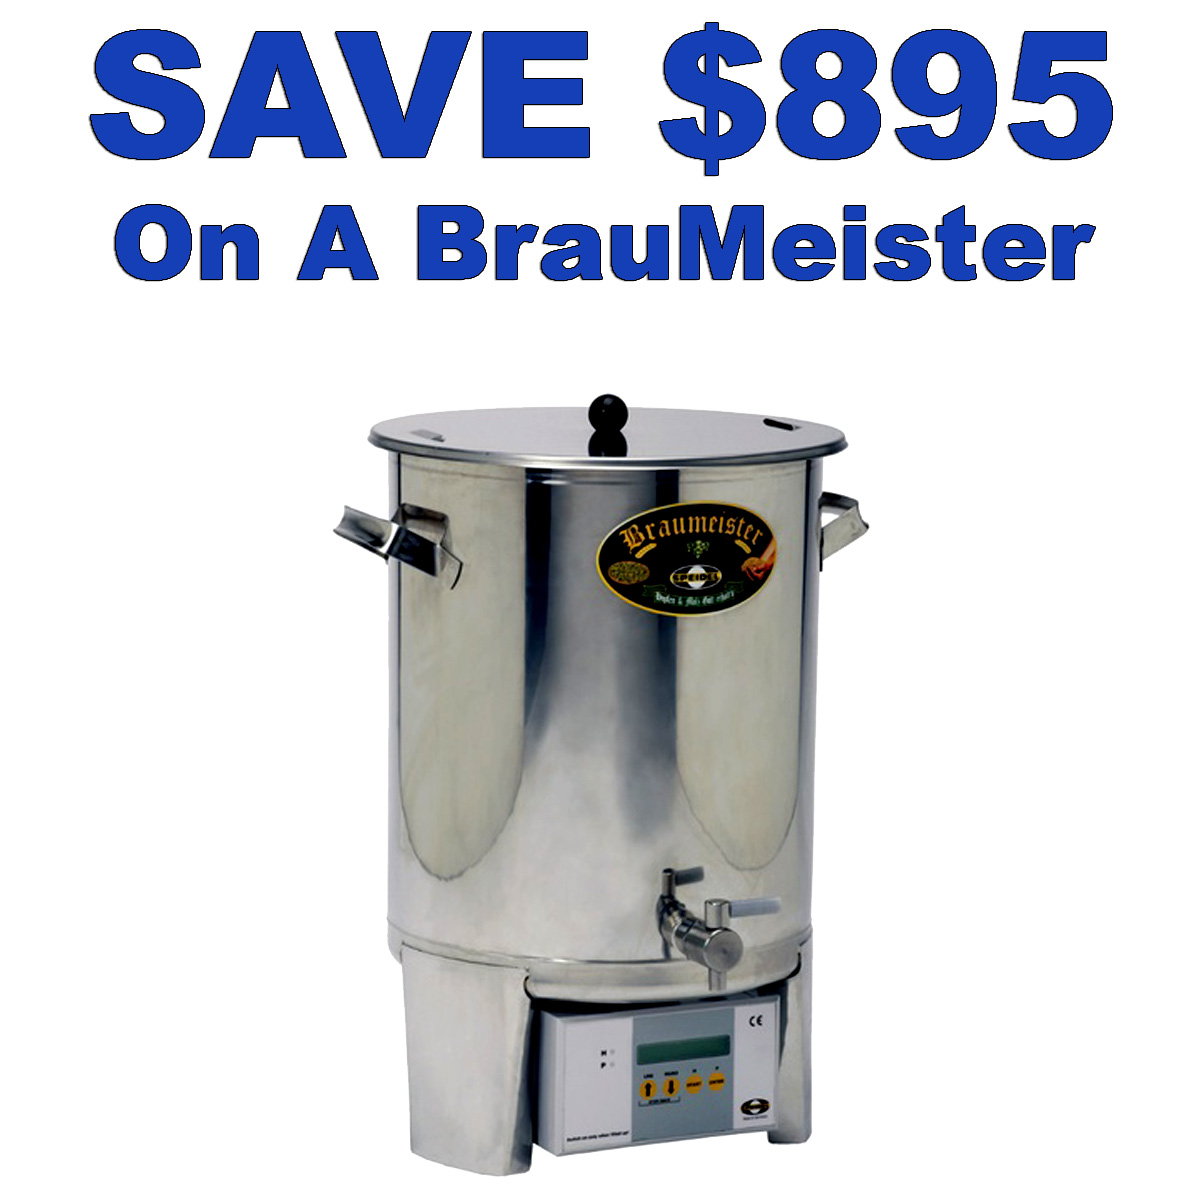 Save $895 On A Used Brau Meister Electric Homebrewing System While Supplies Last Coupon Code